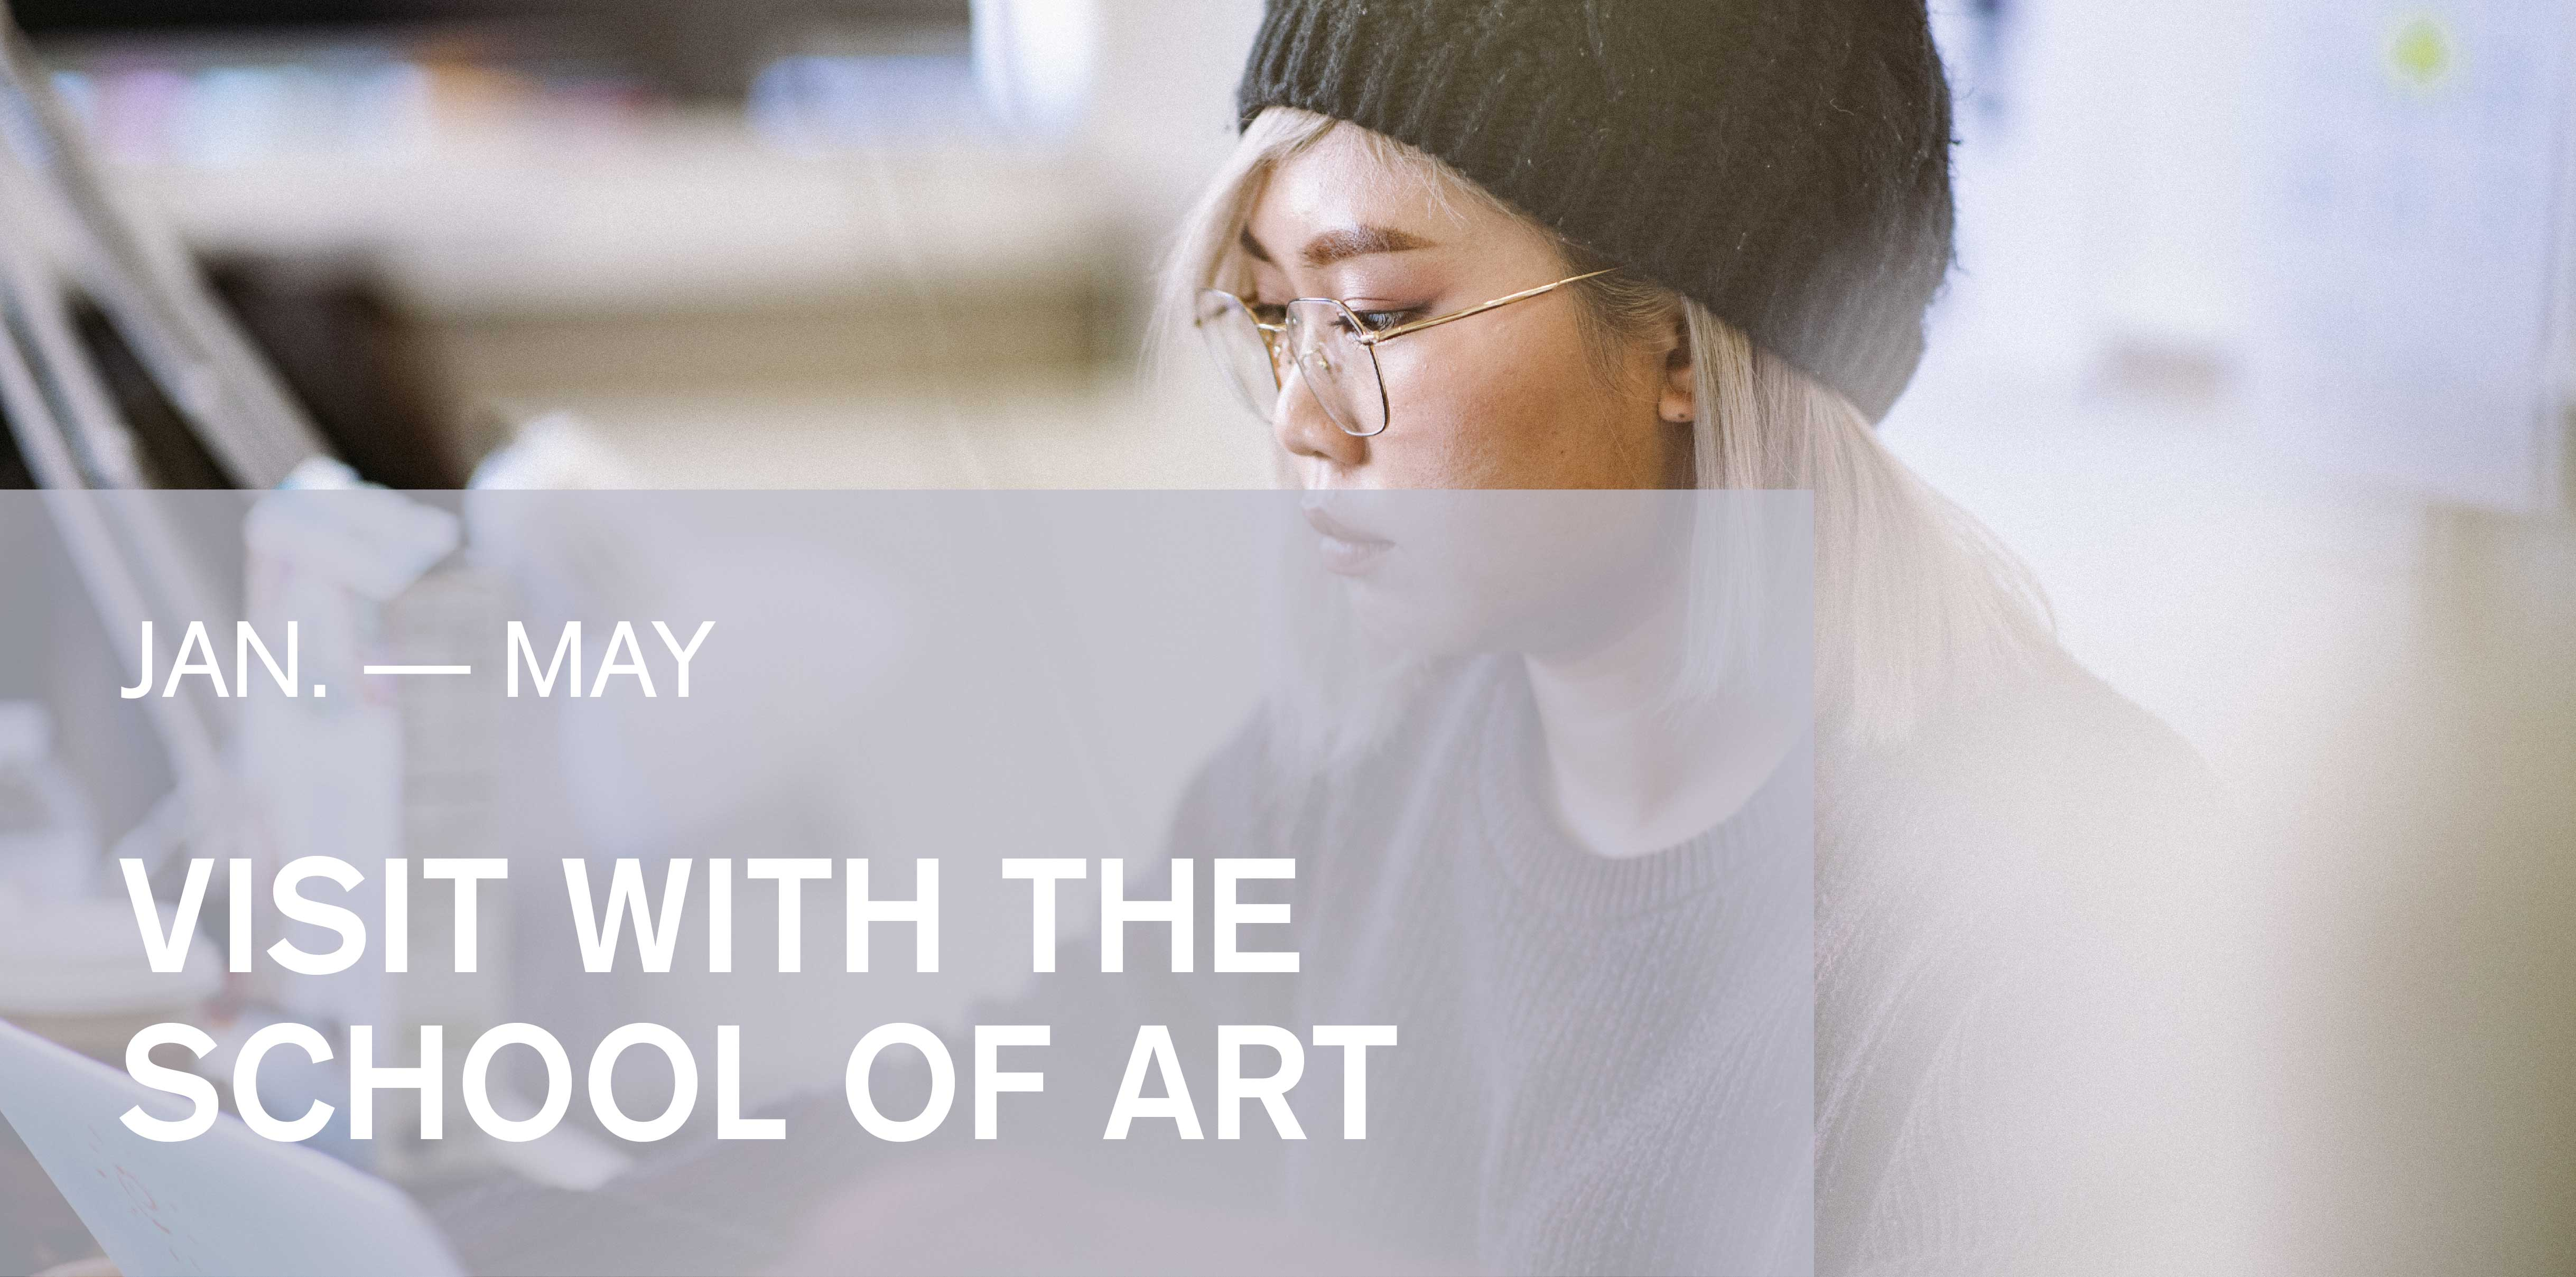 Visit with the School of Art from now through May.